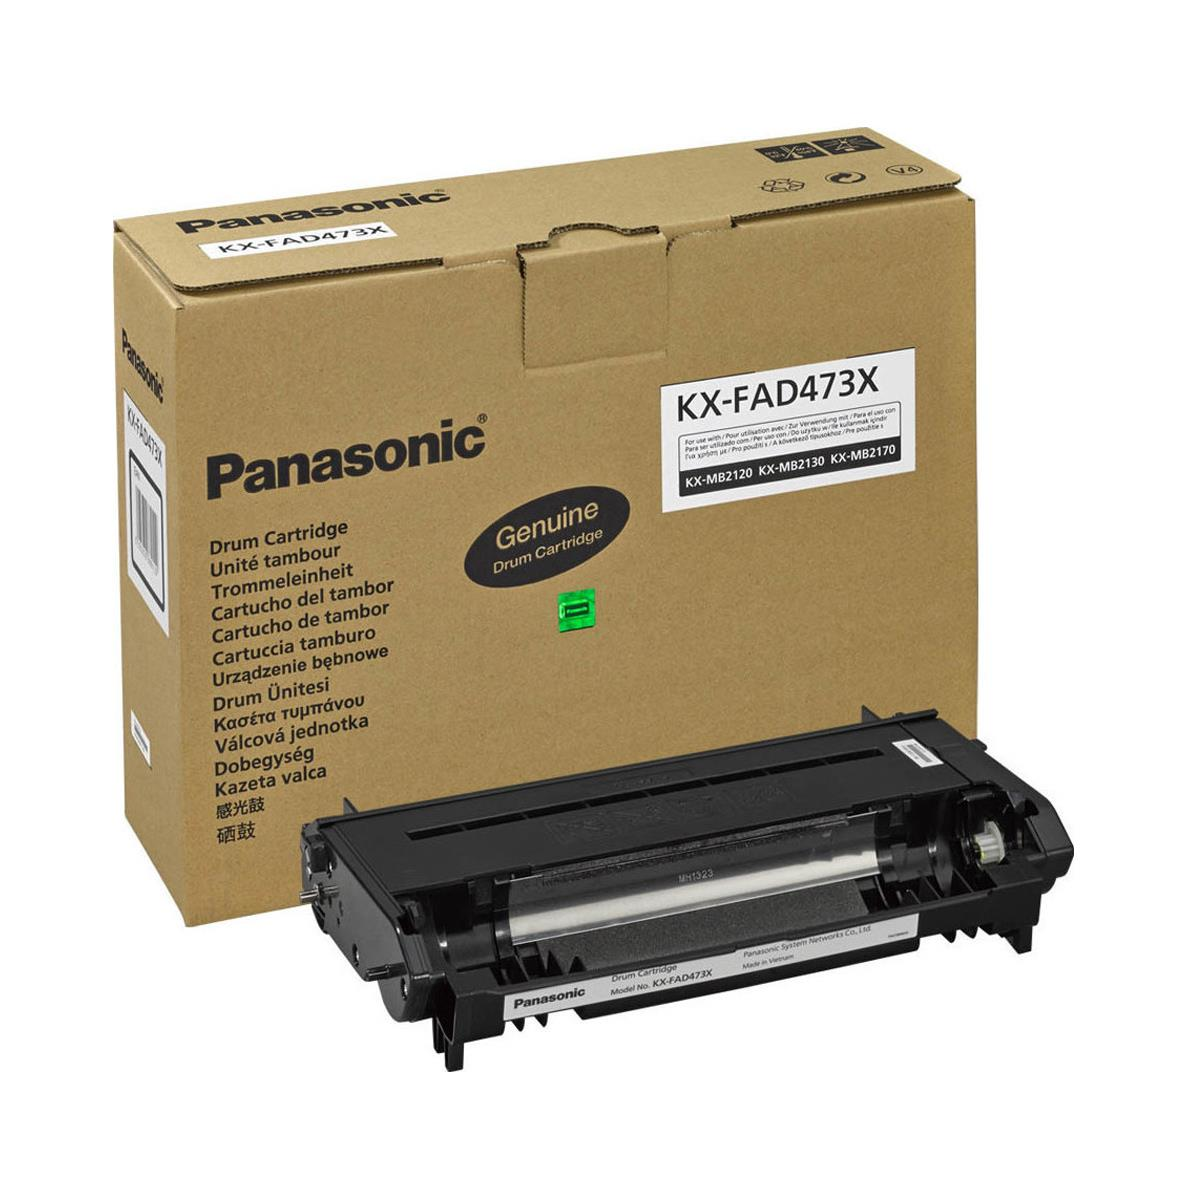 PANASONIC KX-FAD422X DRUM UNIT για KX-MB25xx